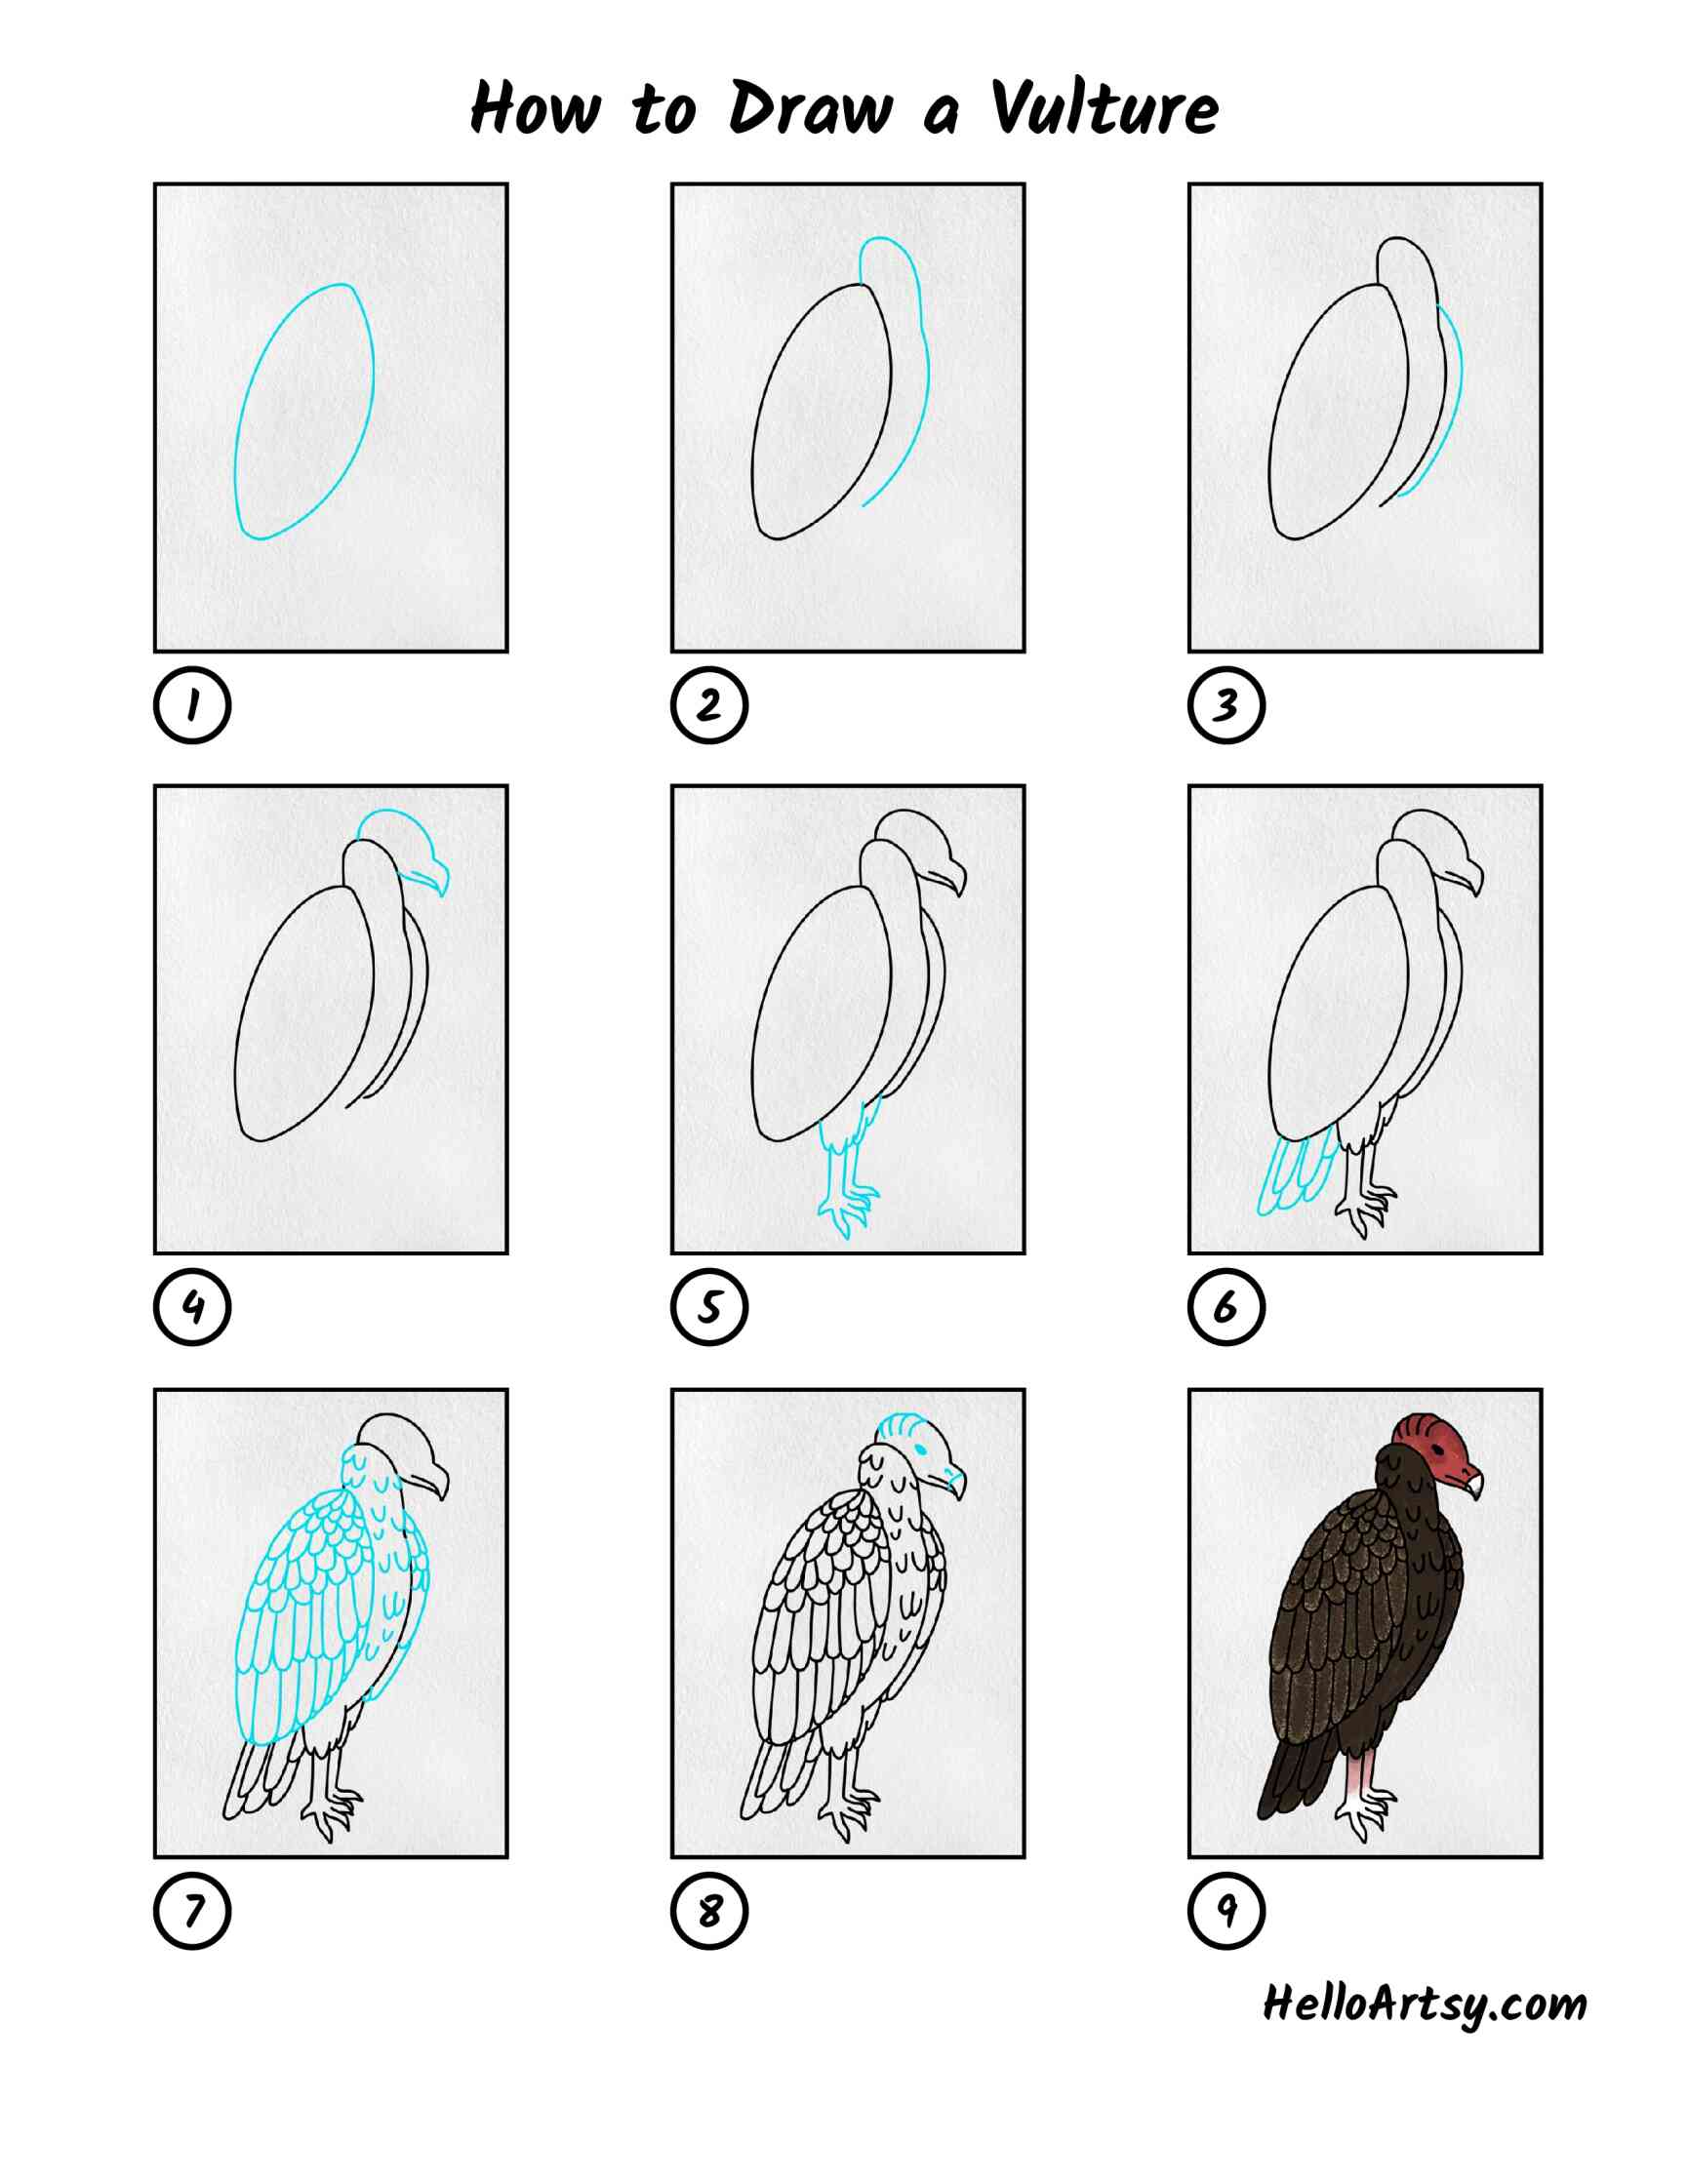 How To Draw A Vulture: All Steps